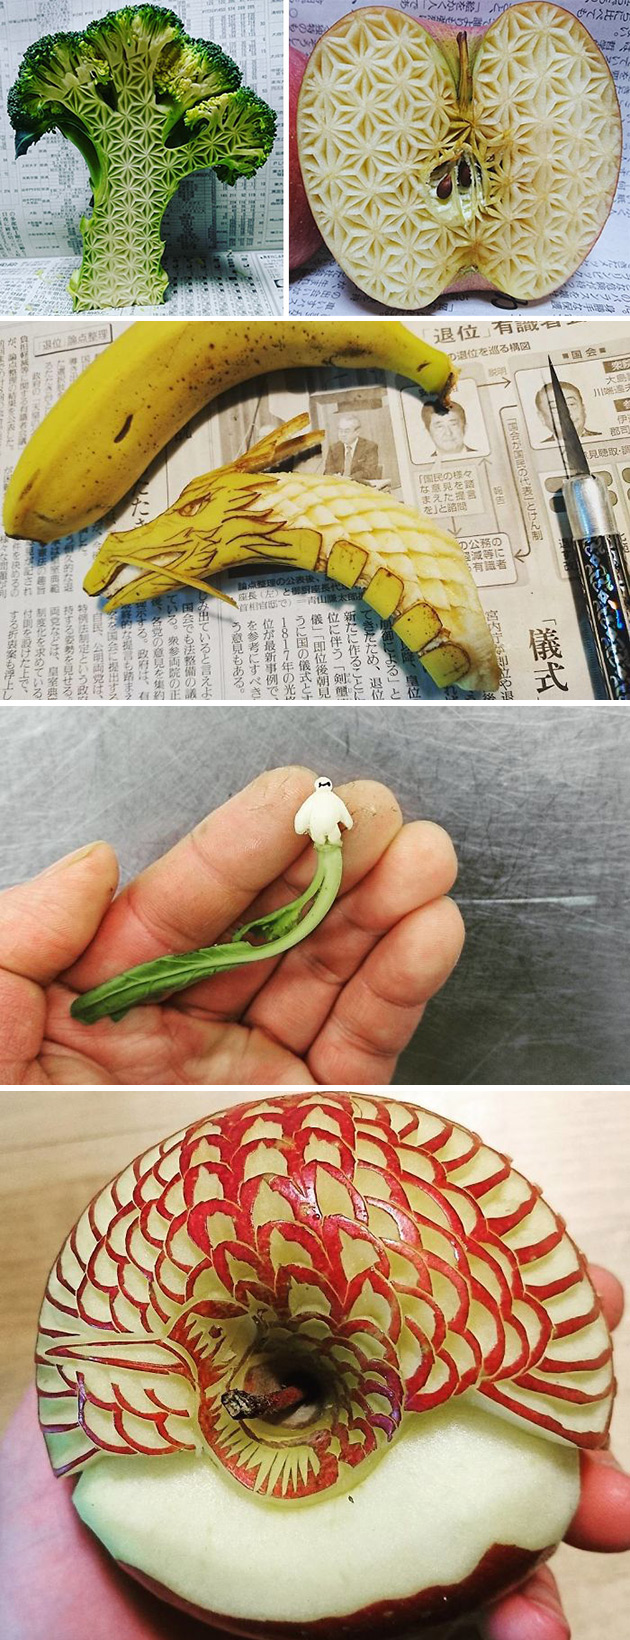 Food Carvings